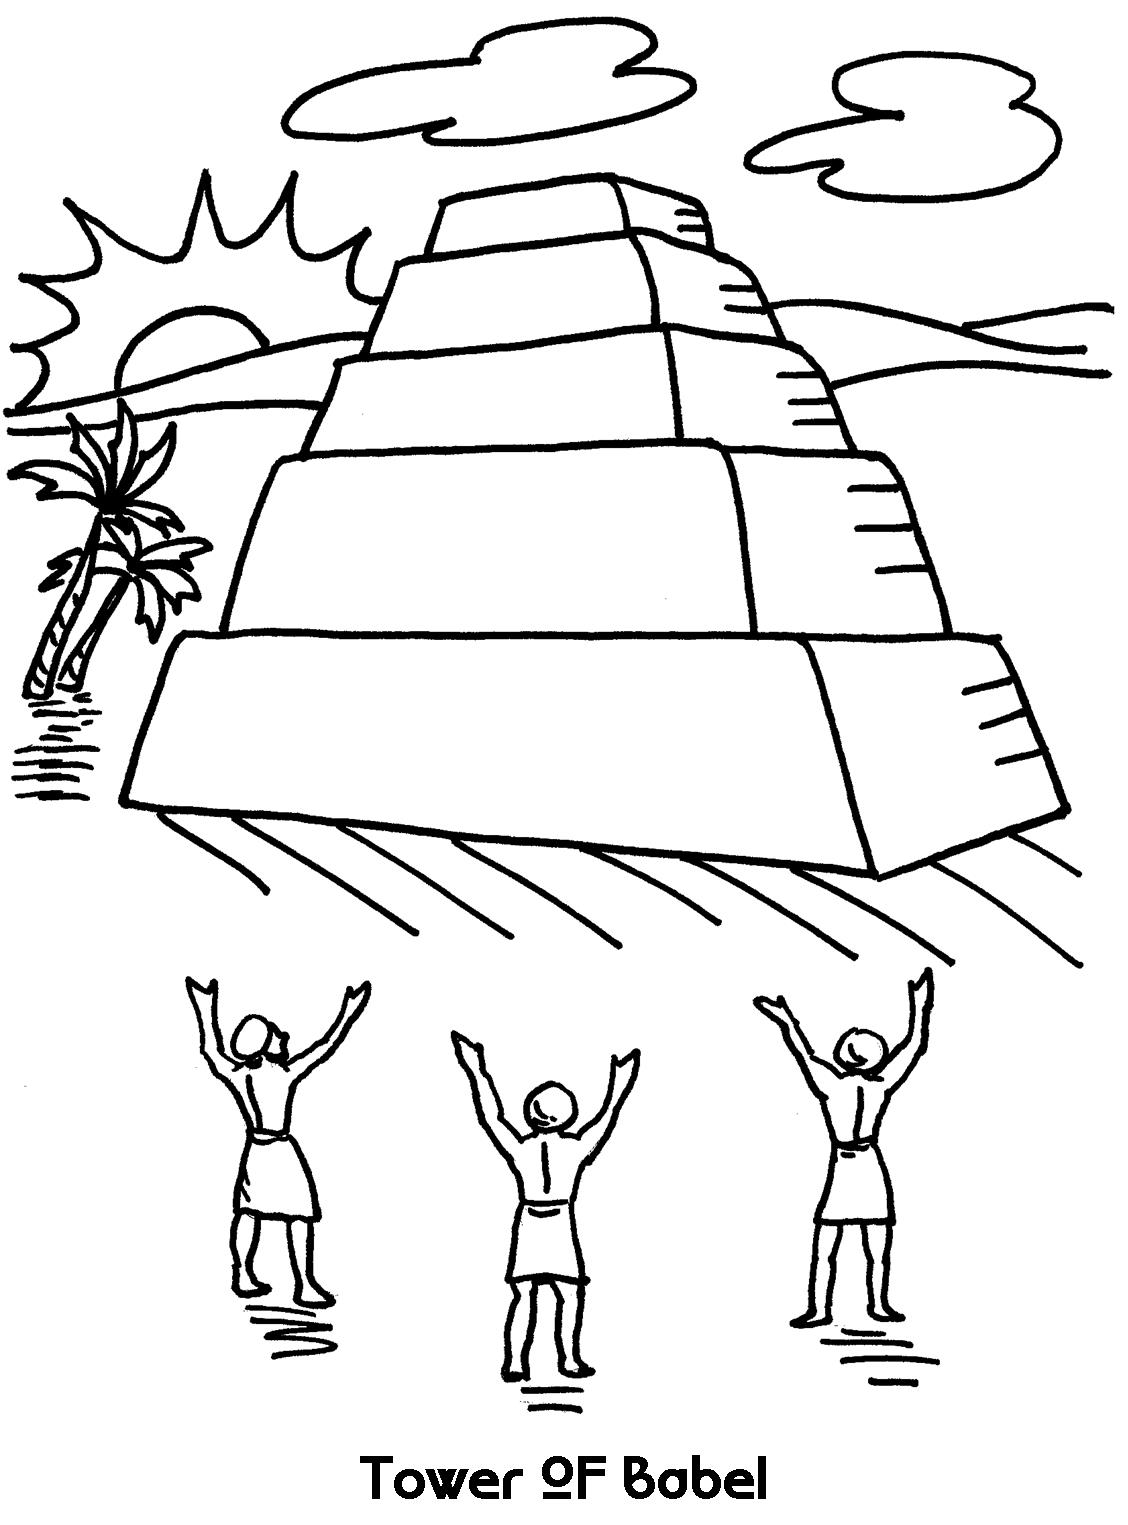 tower of babel coloring page pdf tower of babel coloring page bilscreen page pdf tower coloring babel of